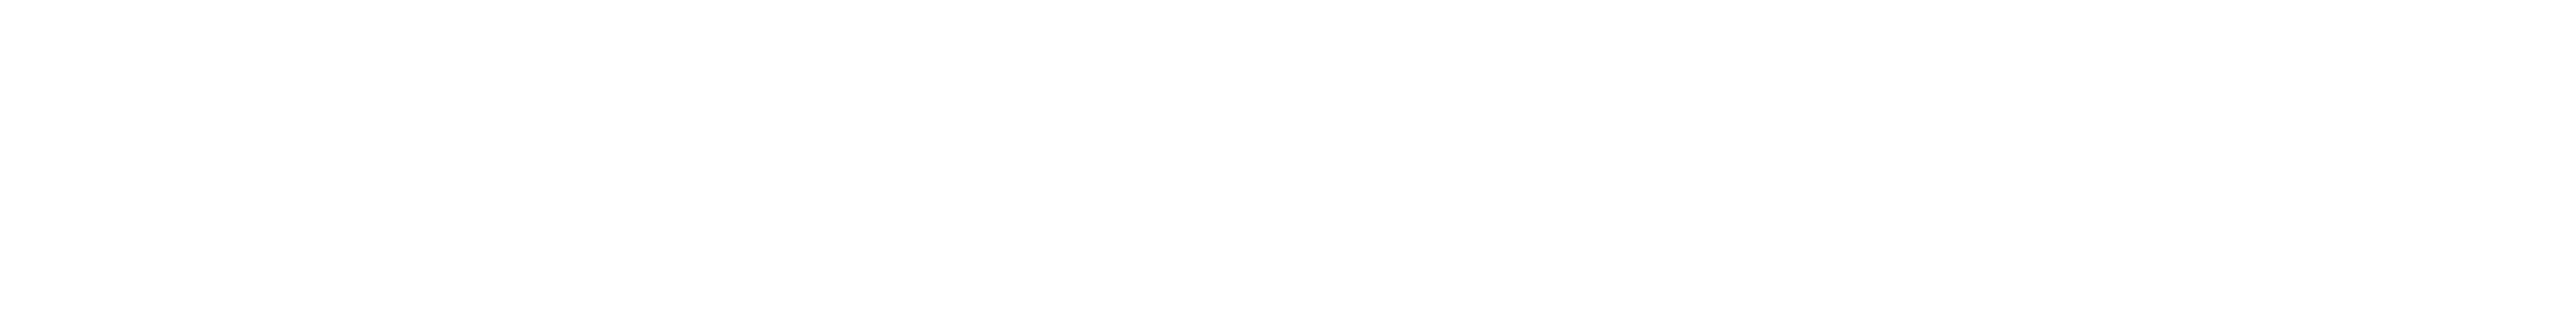 Product Discount_Banner2